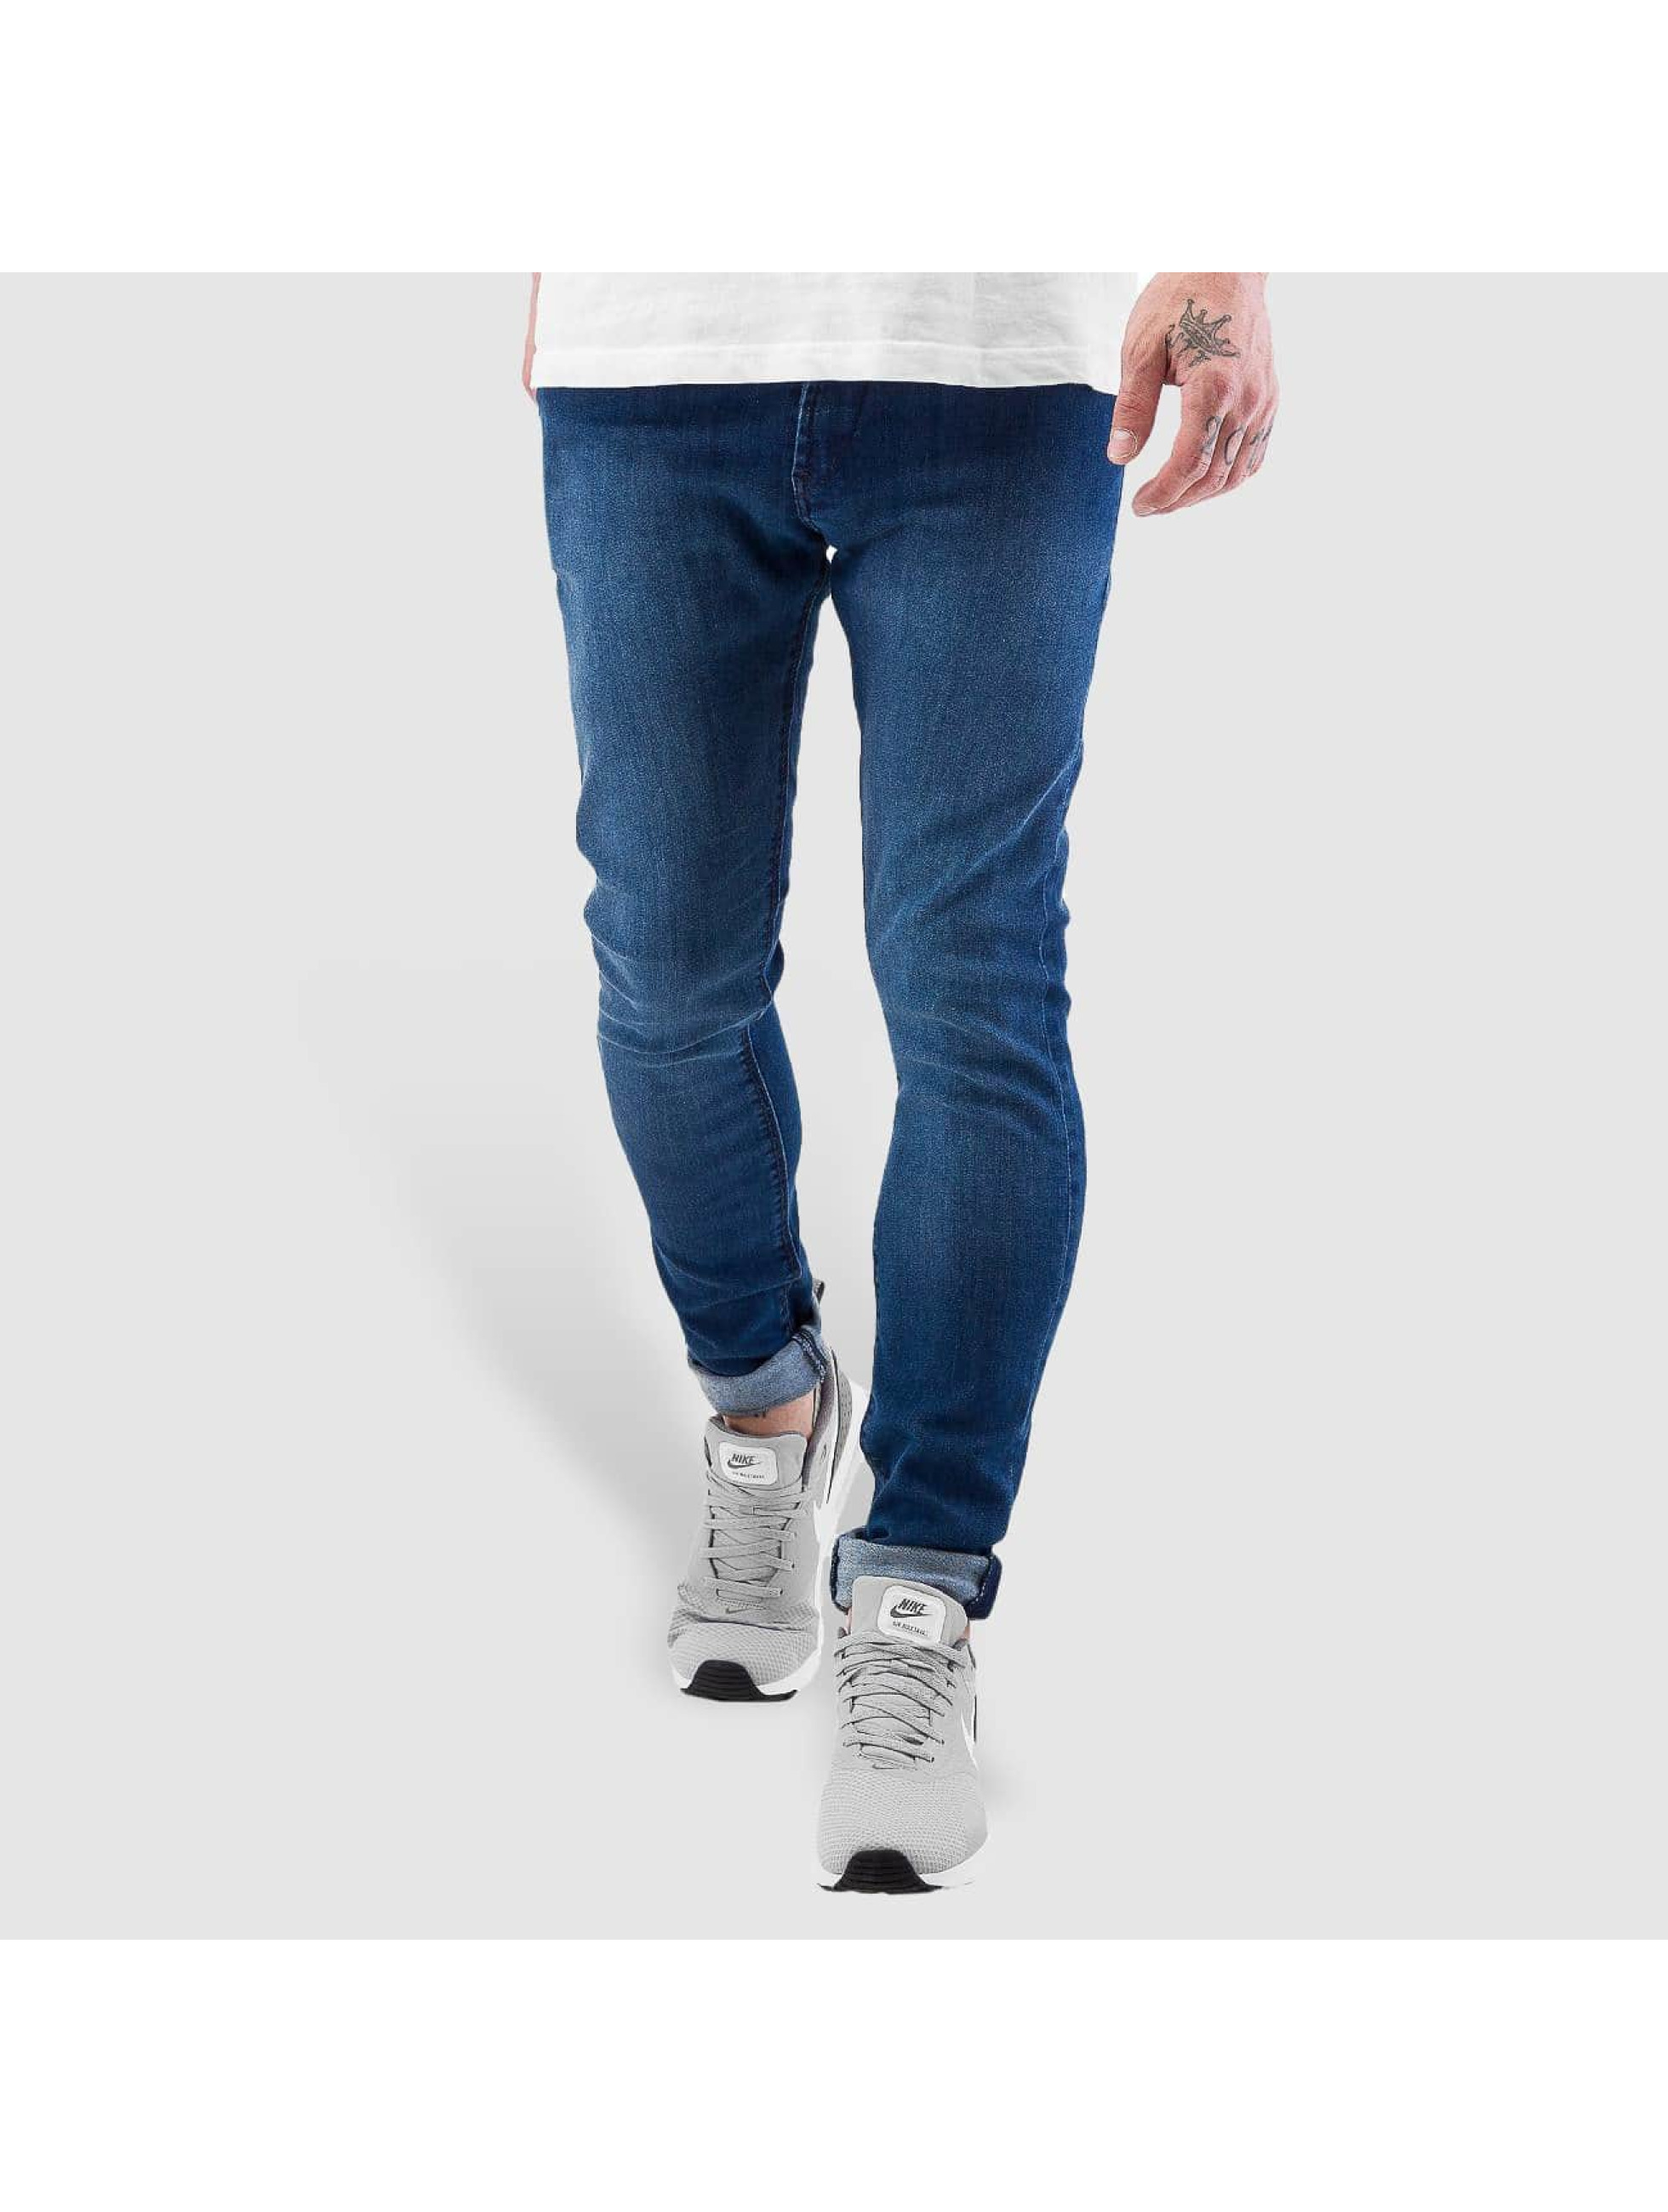 ... Reell Jeans Jeans / Skinny jeans Radar Stretch Super Slim Fit in blauw